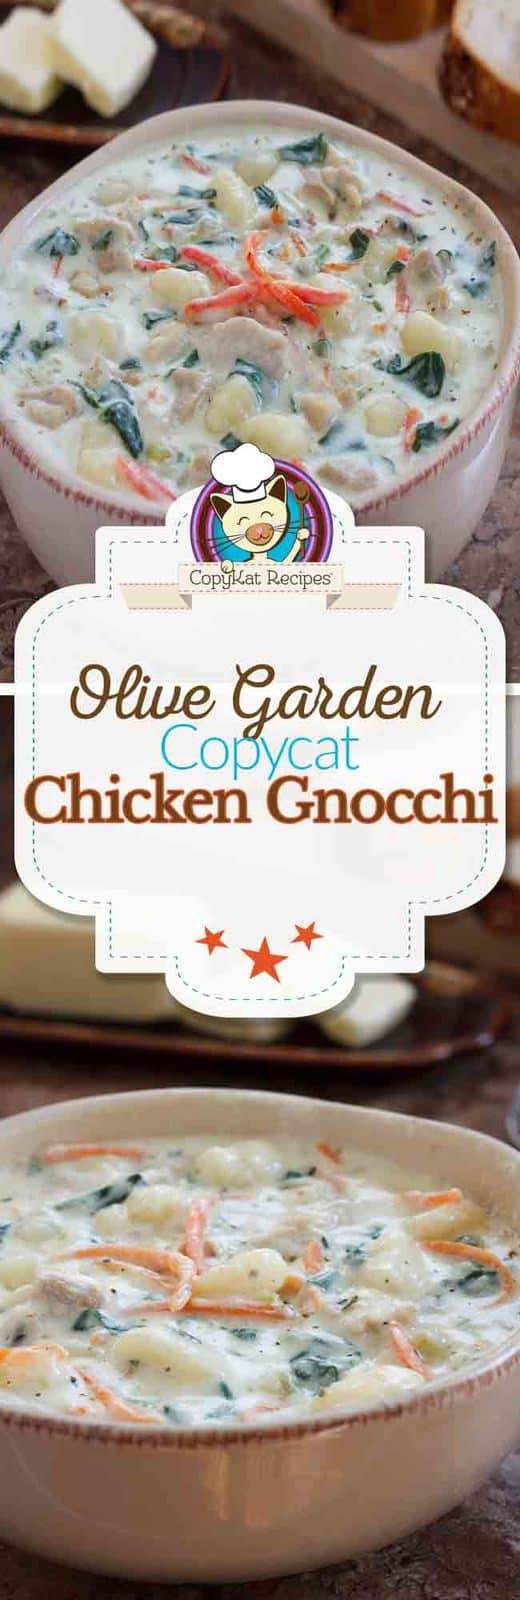 Learn how to make your own homemade copycat version of the Olive Garden Chicken Gnocchi Soup.